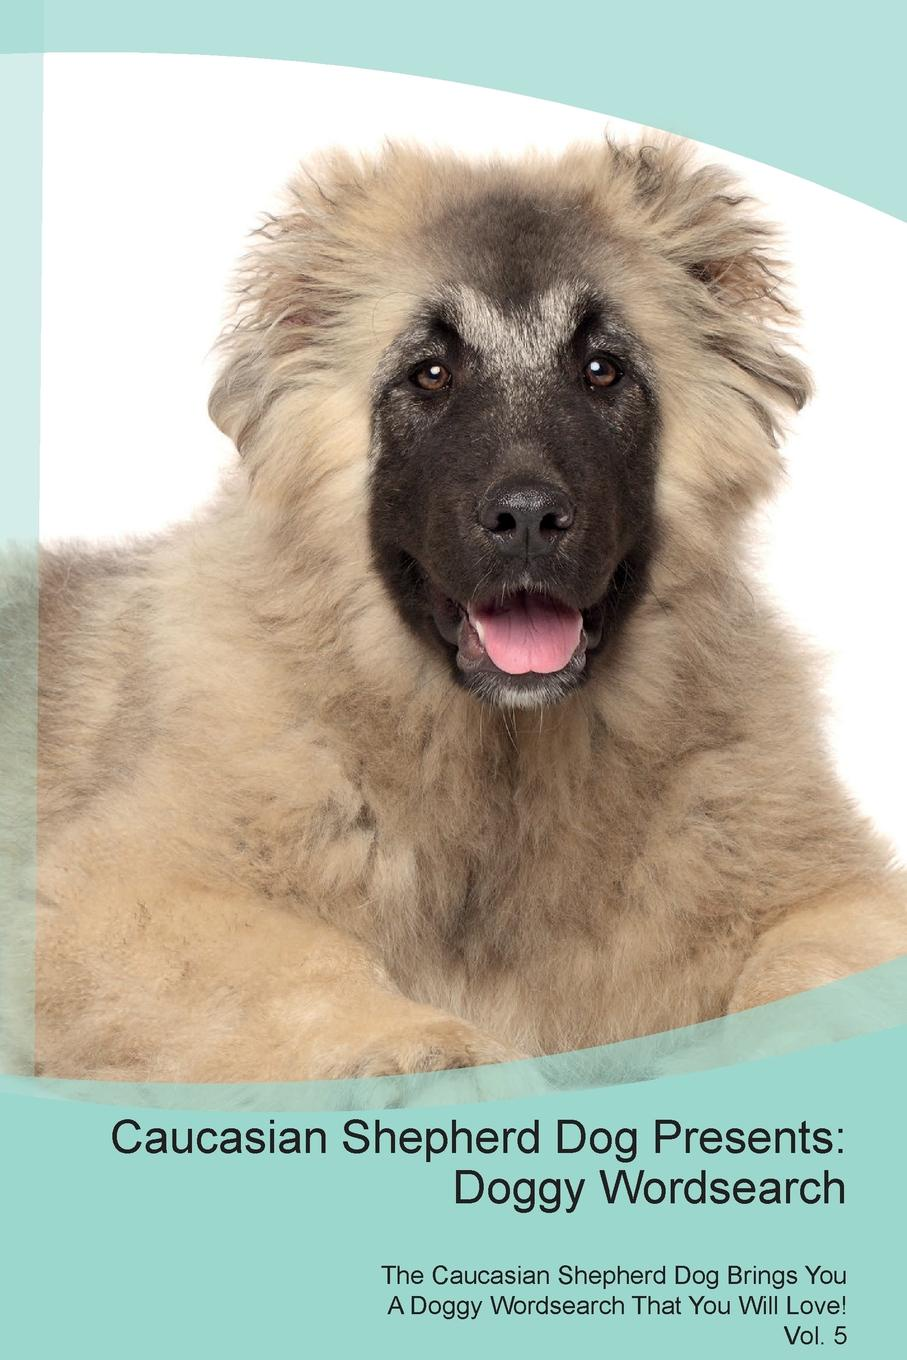 Doggy Puzzles Caucasian Shepherd Dog Presents. Wordsearch The Brings You A That Will Love! Vol. 5